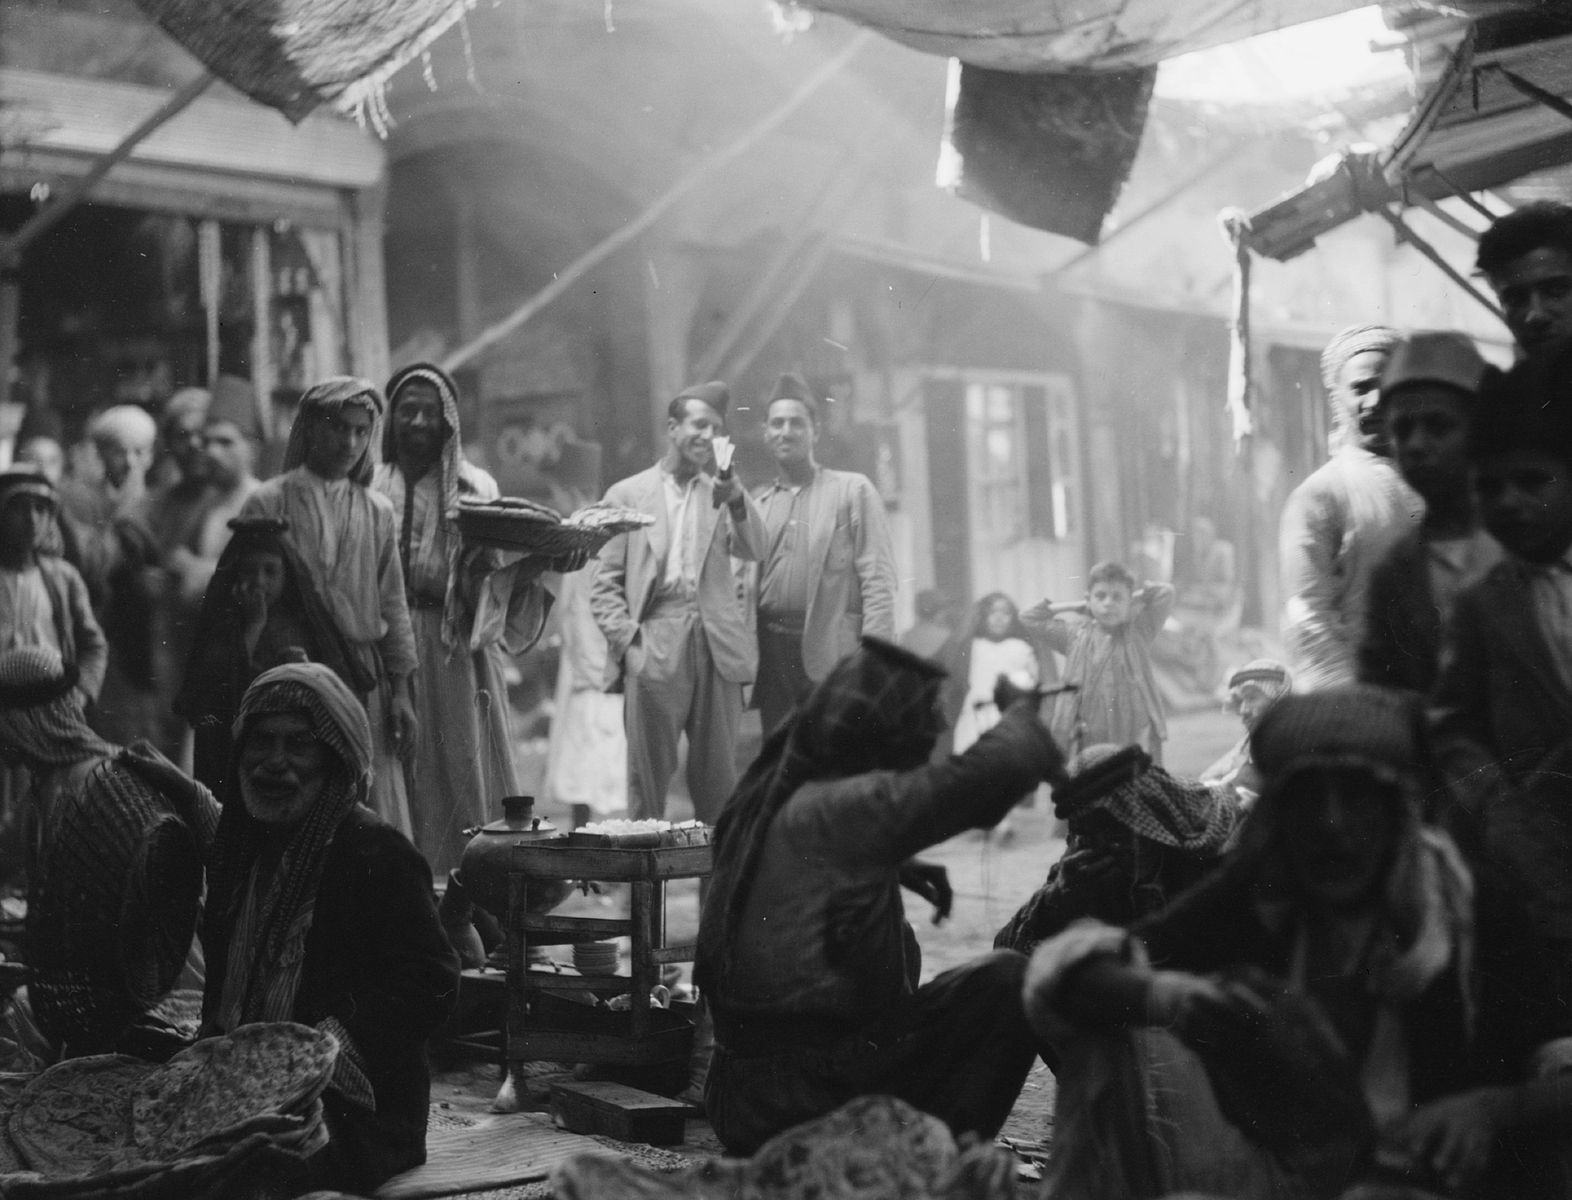 Iraqi market (Souk) in Mosul city, northern Iraq, between Sept. 26 and Oct. 12, 1932. G. Eric and Edith Matson Photograph Collection; Library of Congress LC-DIG-matpc-13267